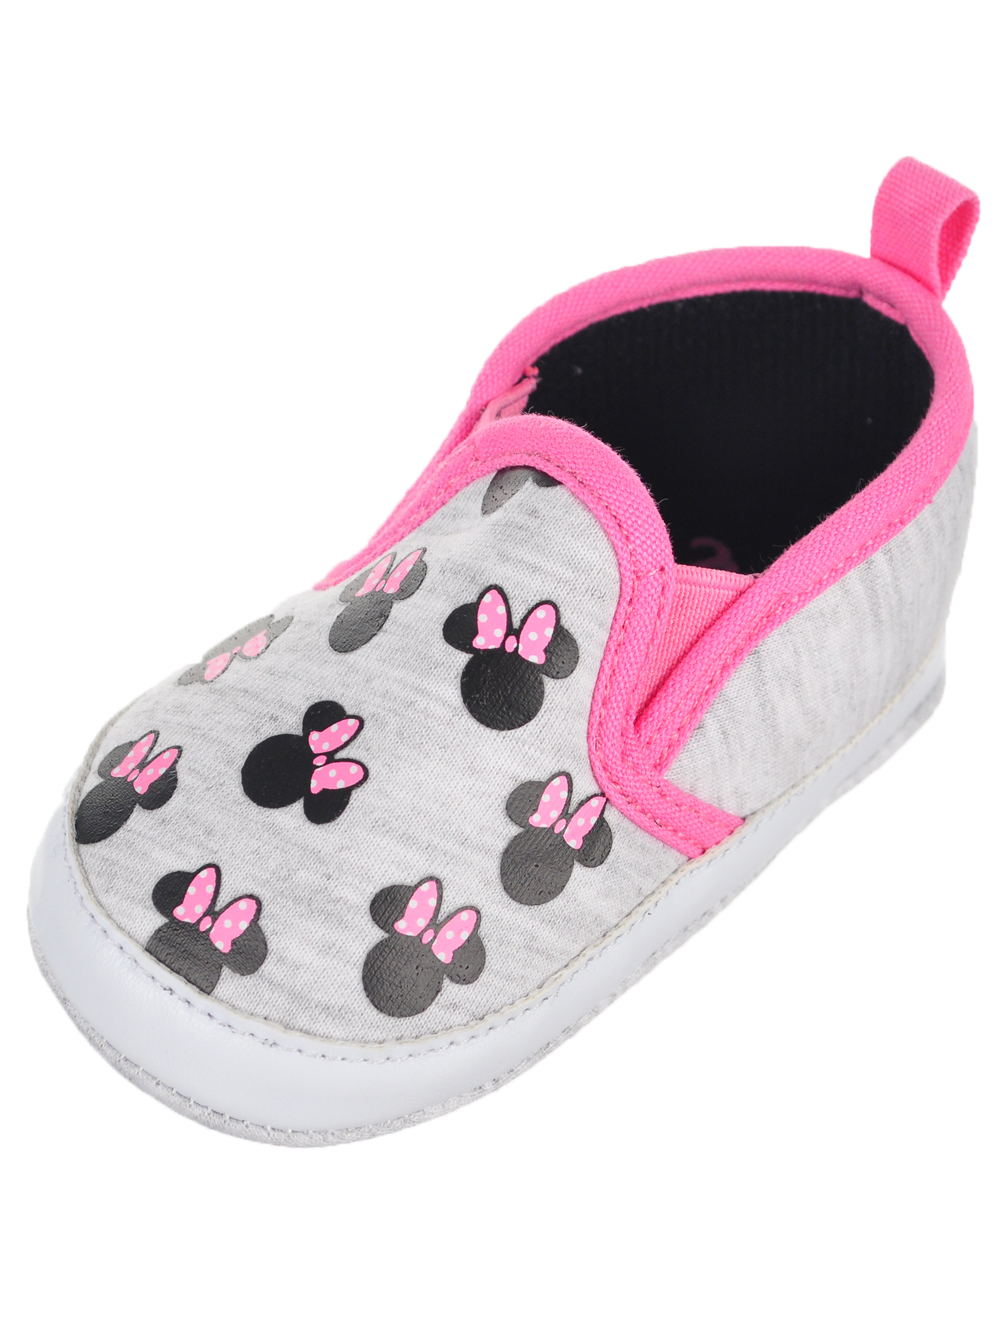 Disney Minnie Mouse Baby Girls' Slip-On Booties